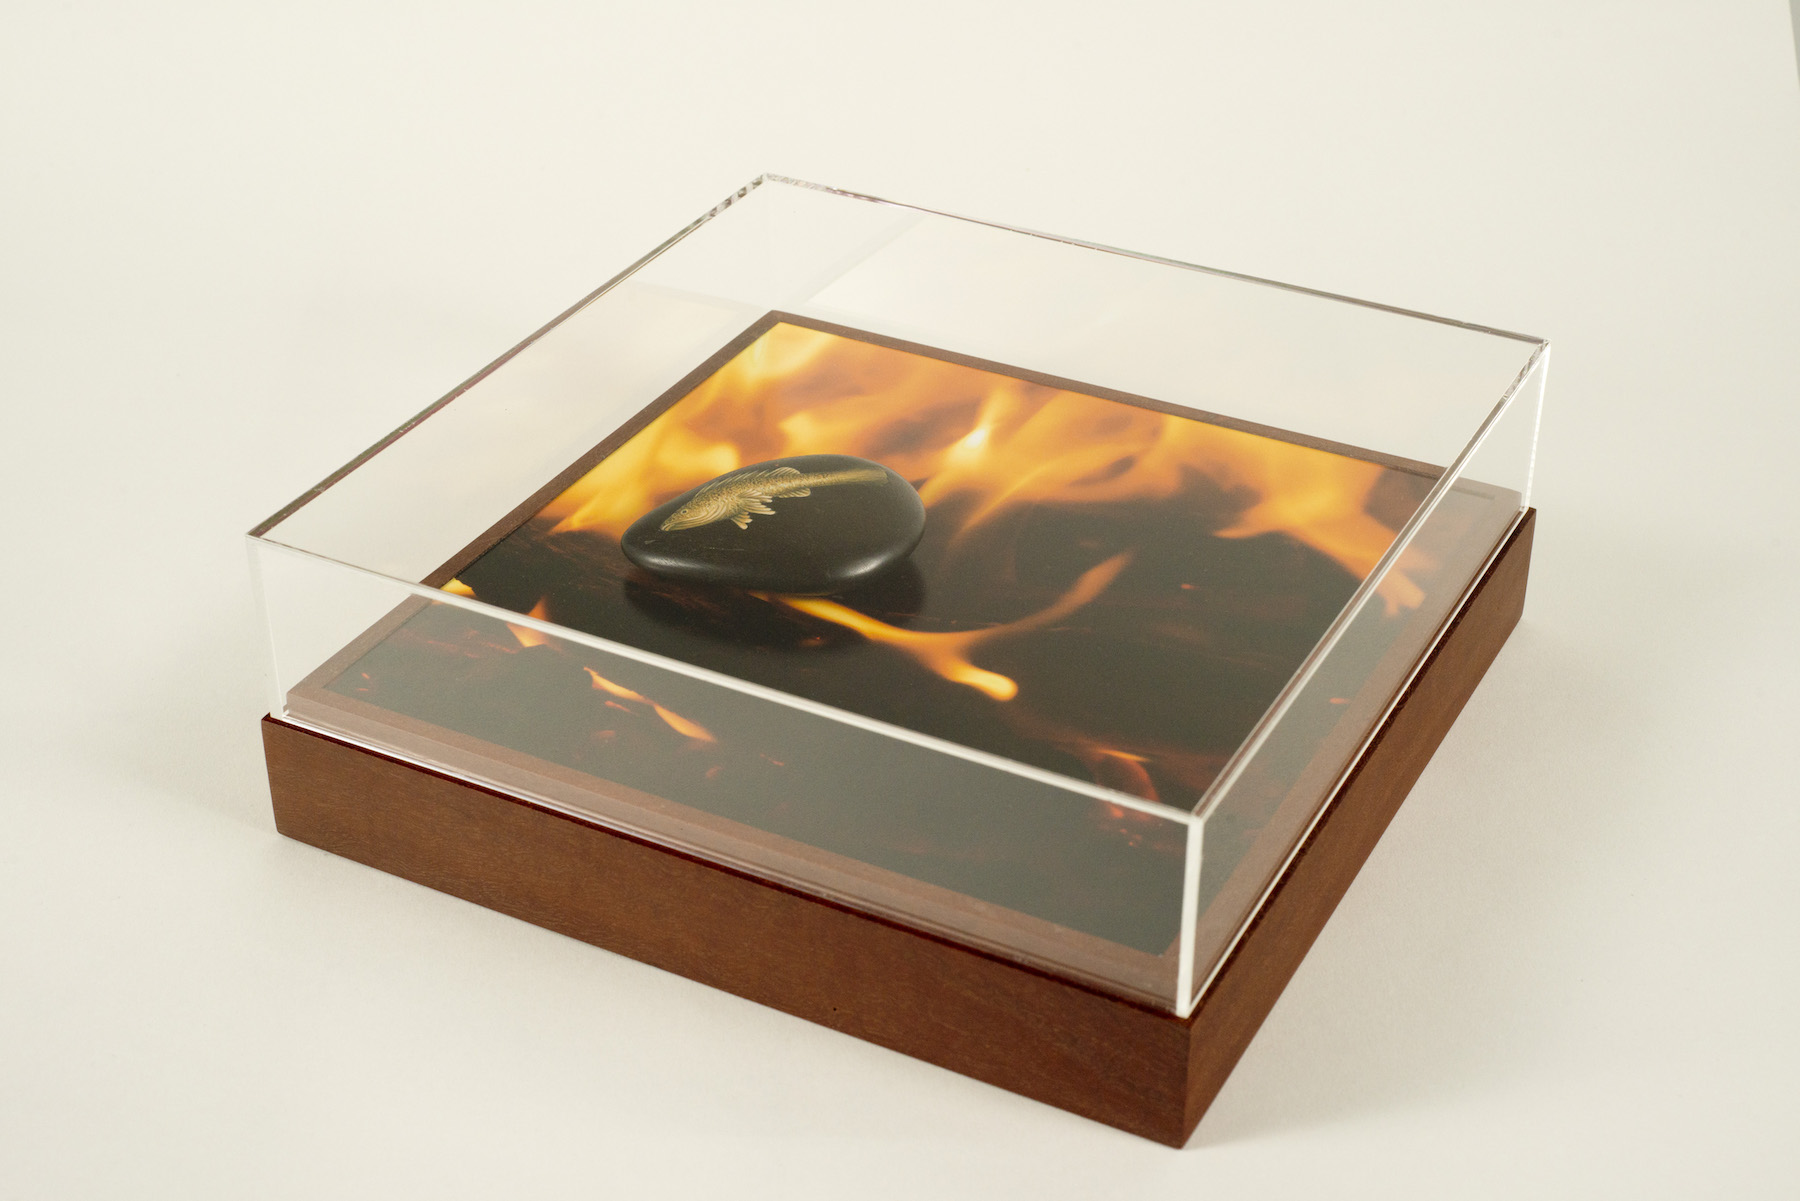 Elementals – Fire, gouache, petrified redgum, colour photograph on dibond, redgum and perspex, 25 x 25 x 9cm, 2017-18